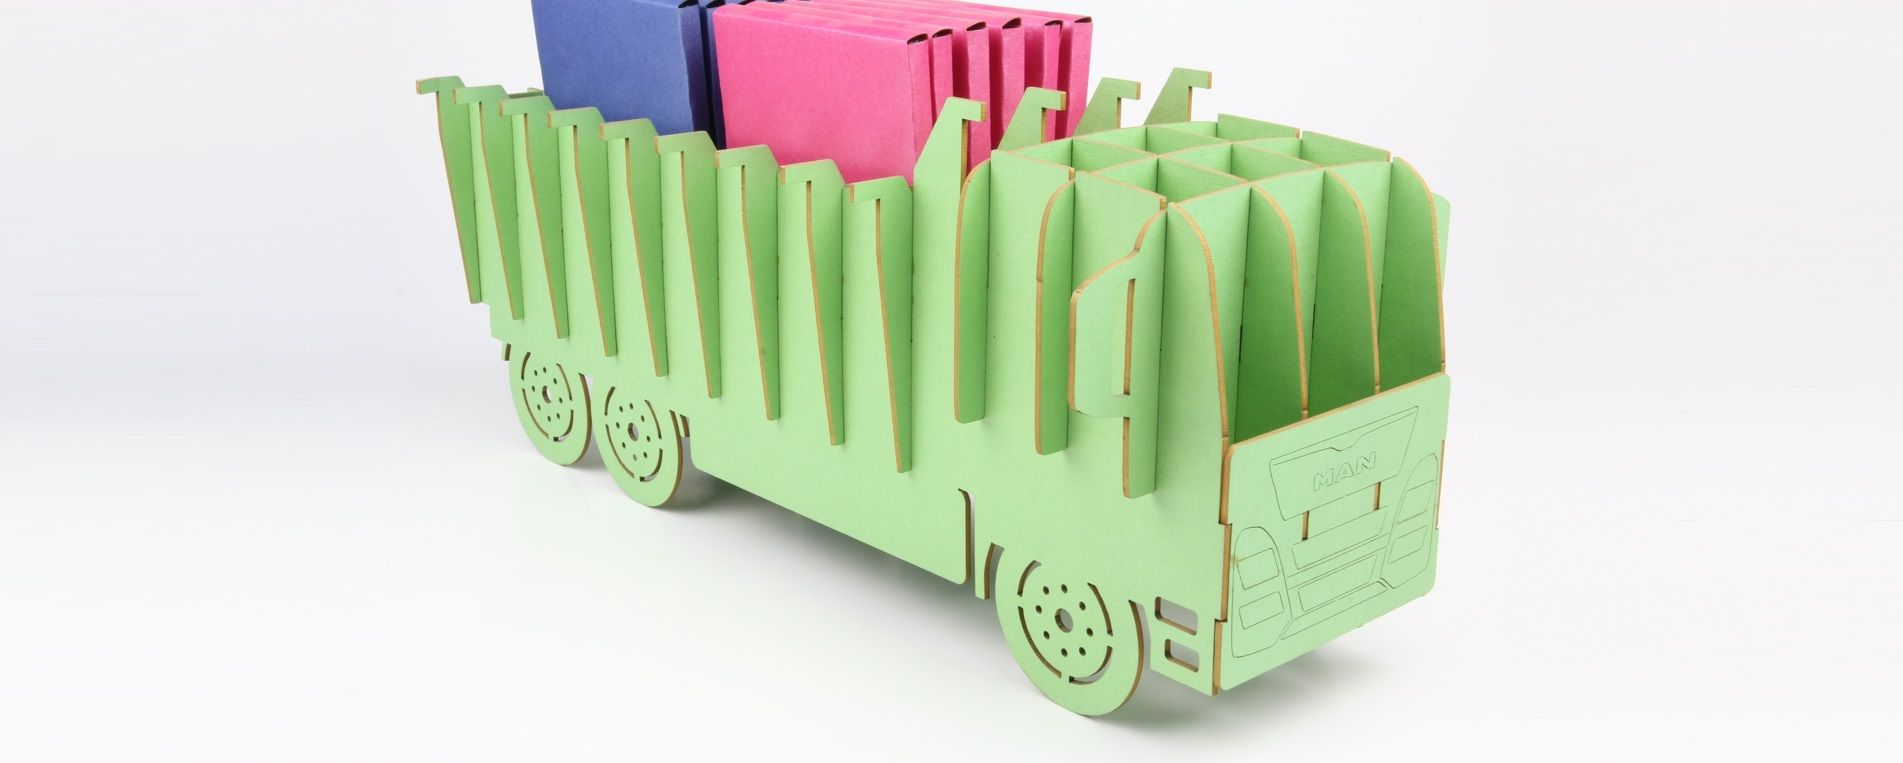 A model made by laser cutting of colored cardboard